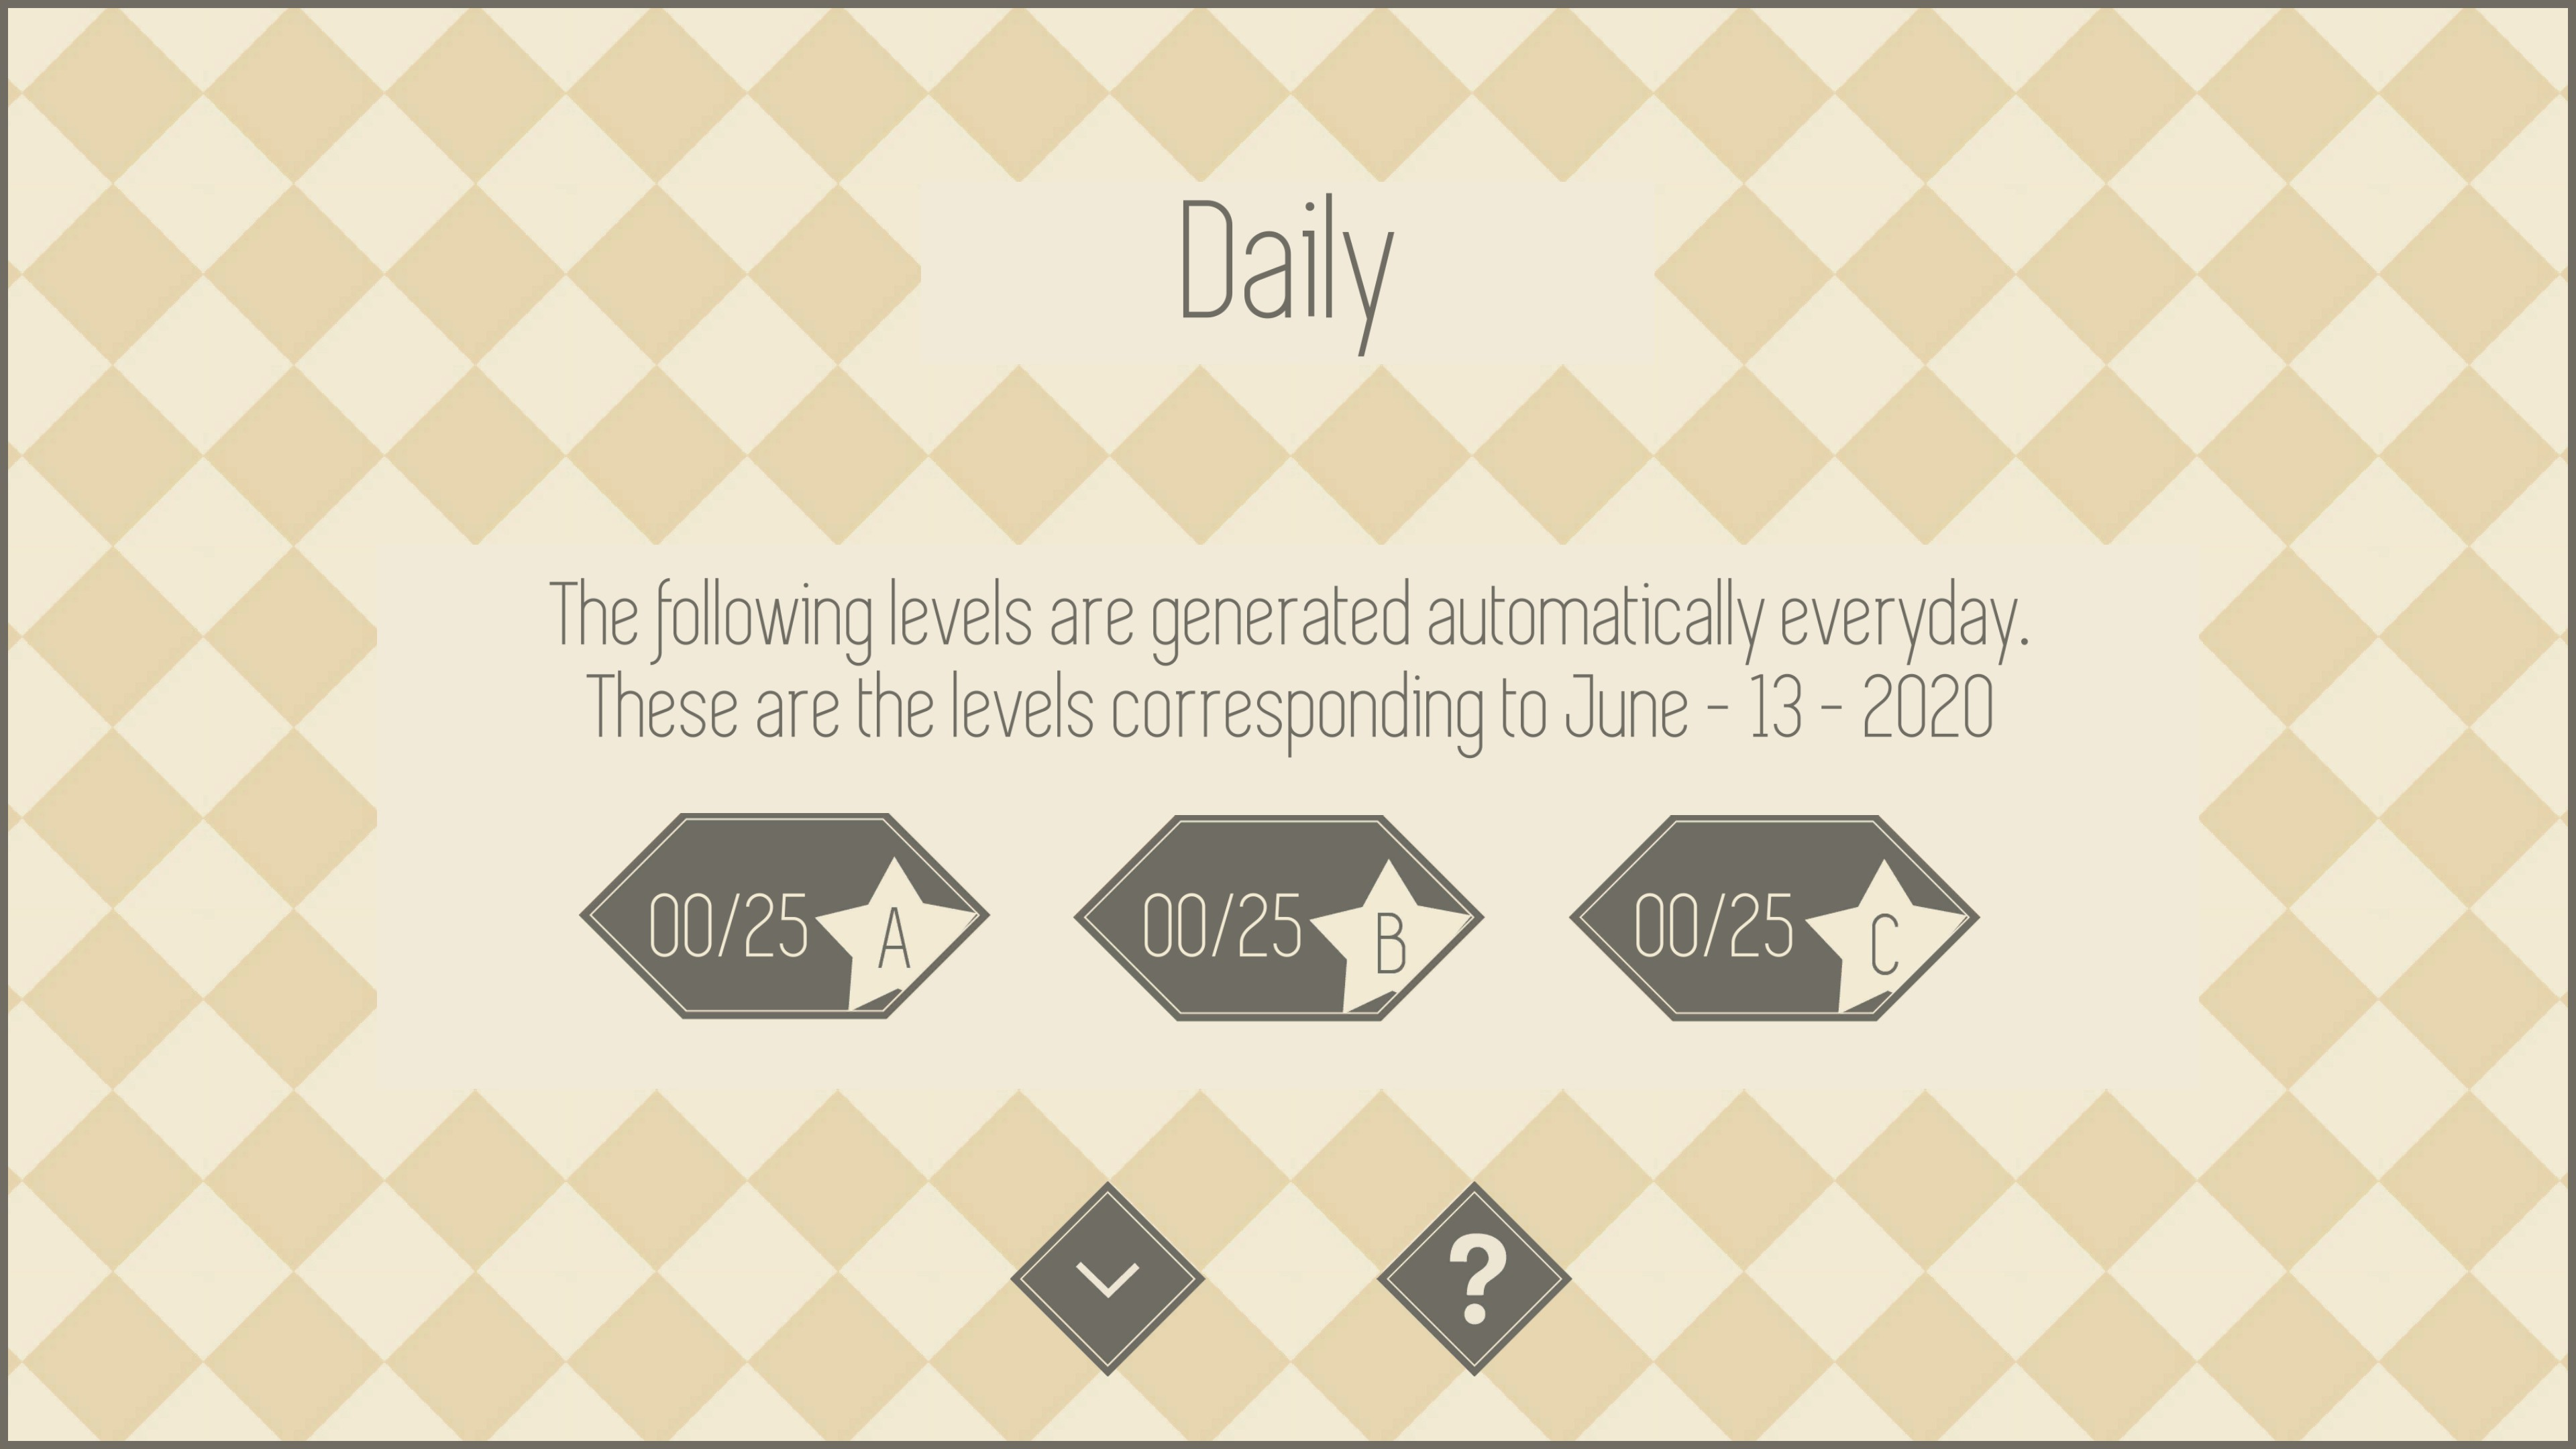 instructions saying The following levels are generated automatically everyday. These are the levels corresponding to June - 13 - 2020.